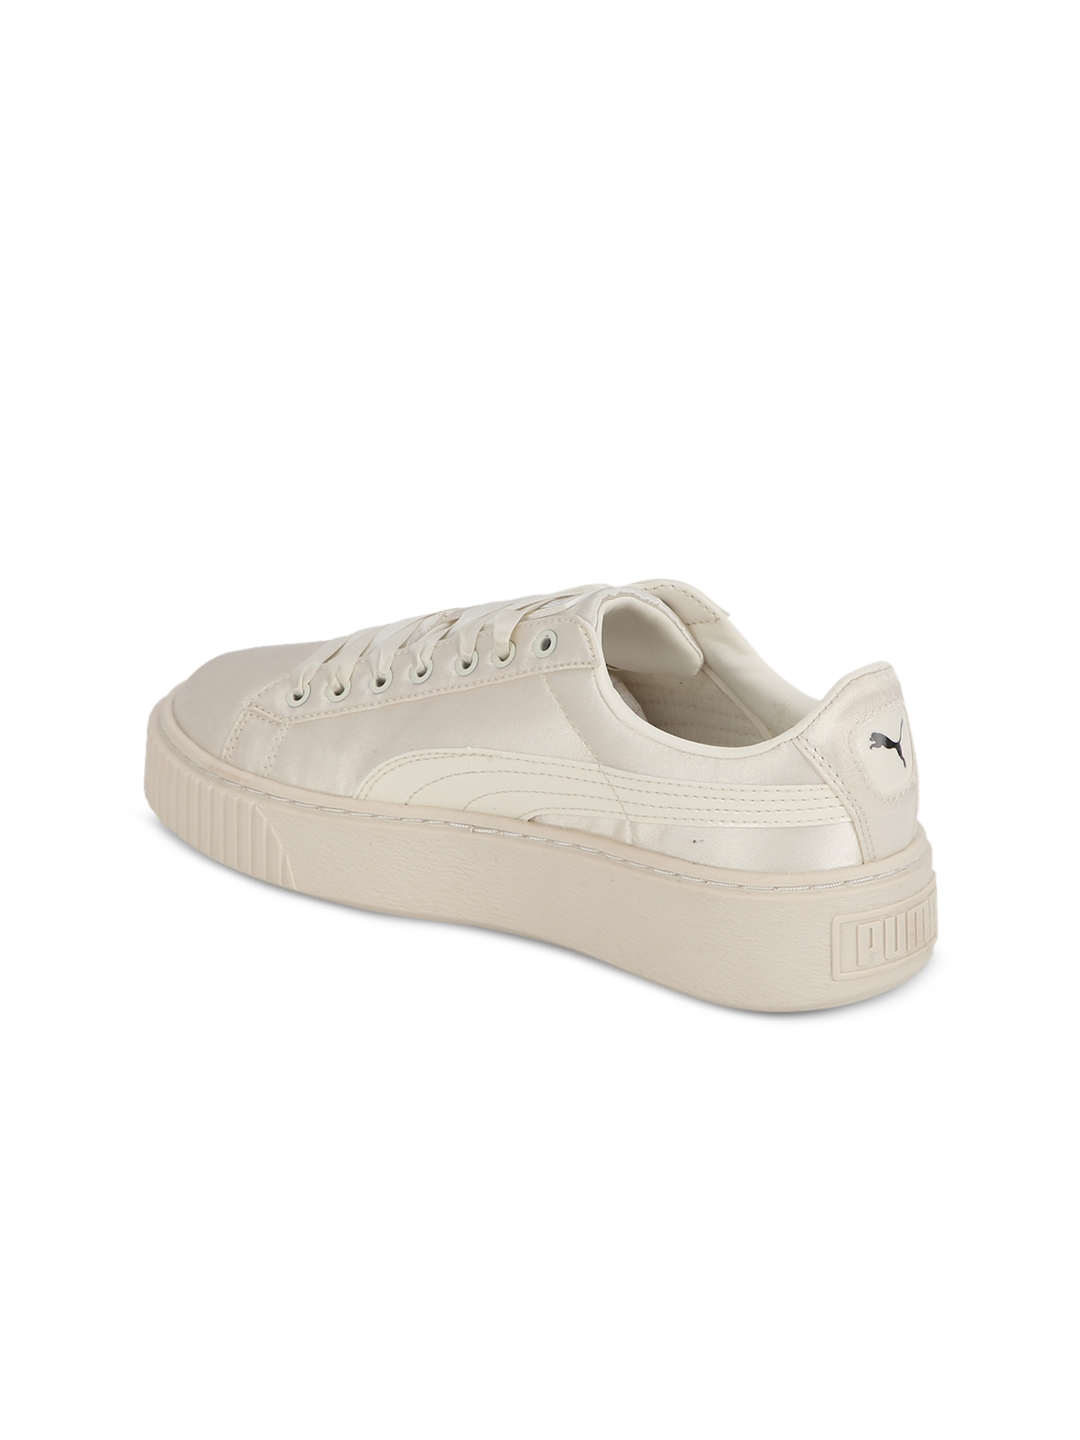 ce50abfbb62 Buy Puma Girls Off White Basket Platform Tween Jr Shoes - Sports ...